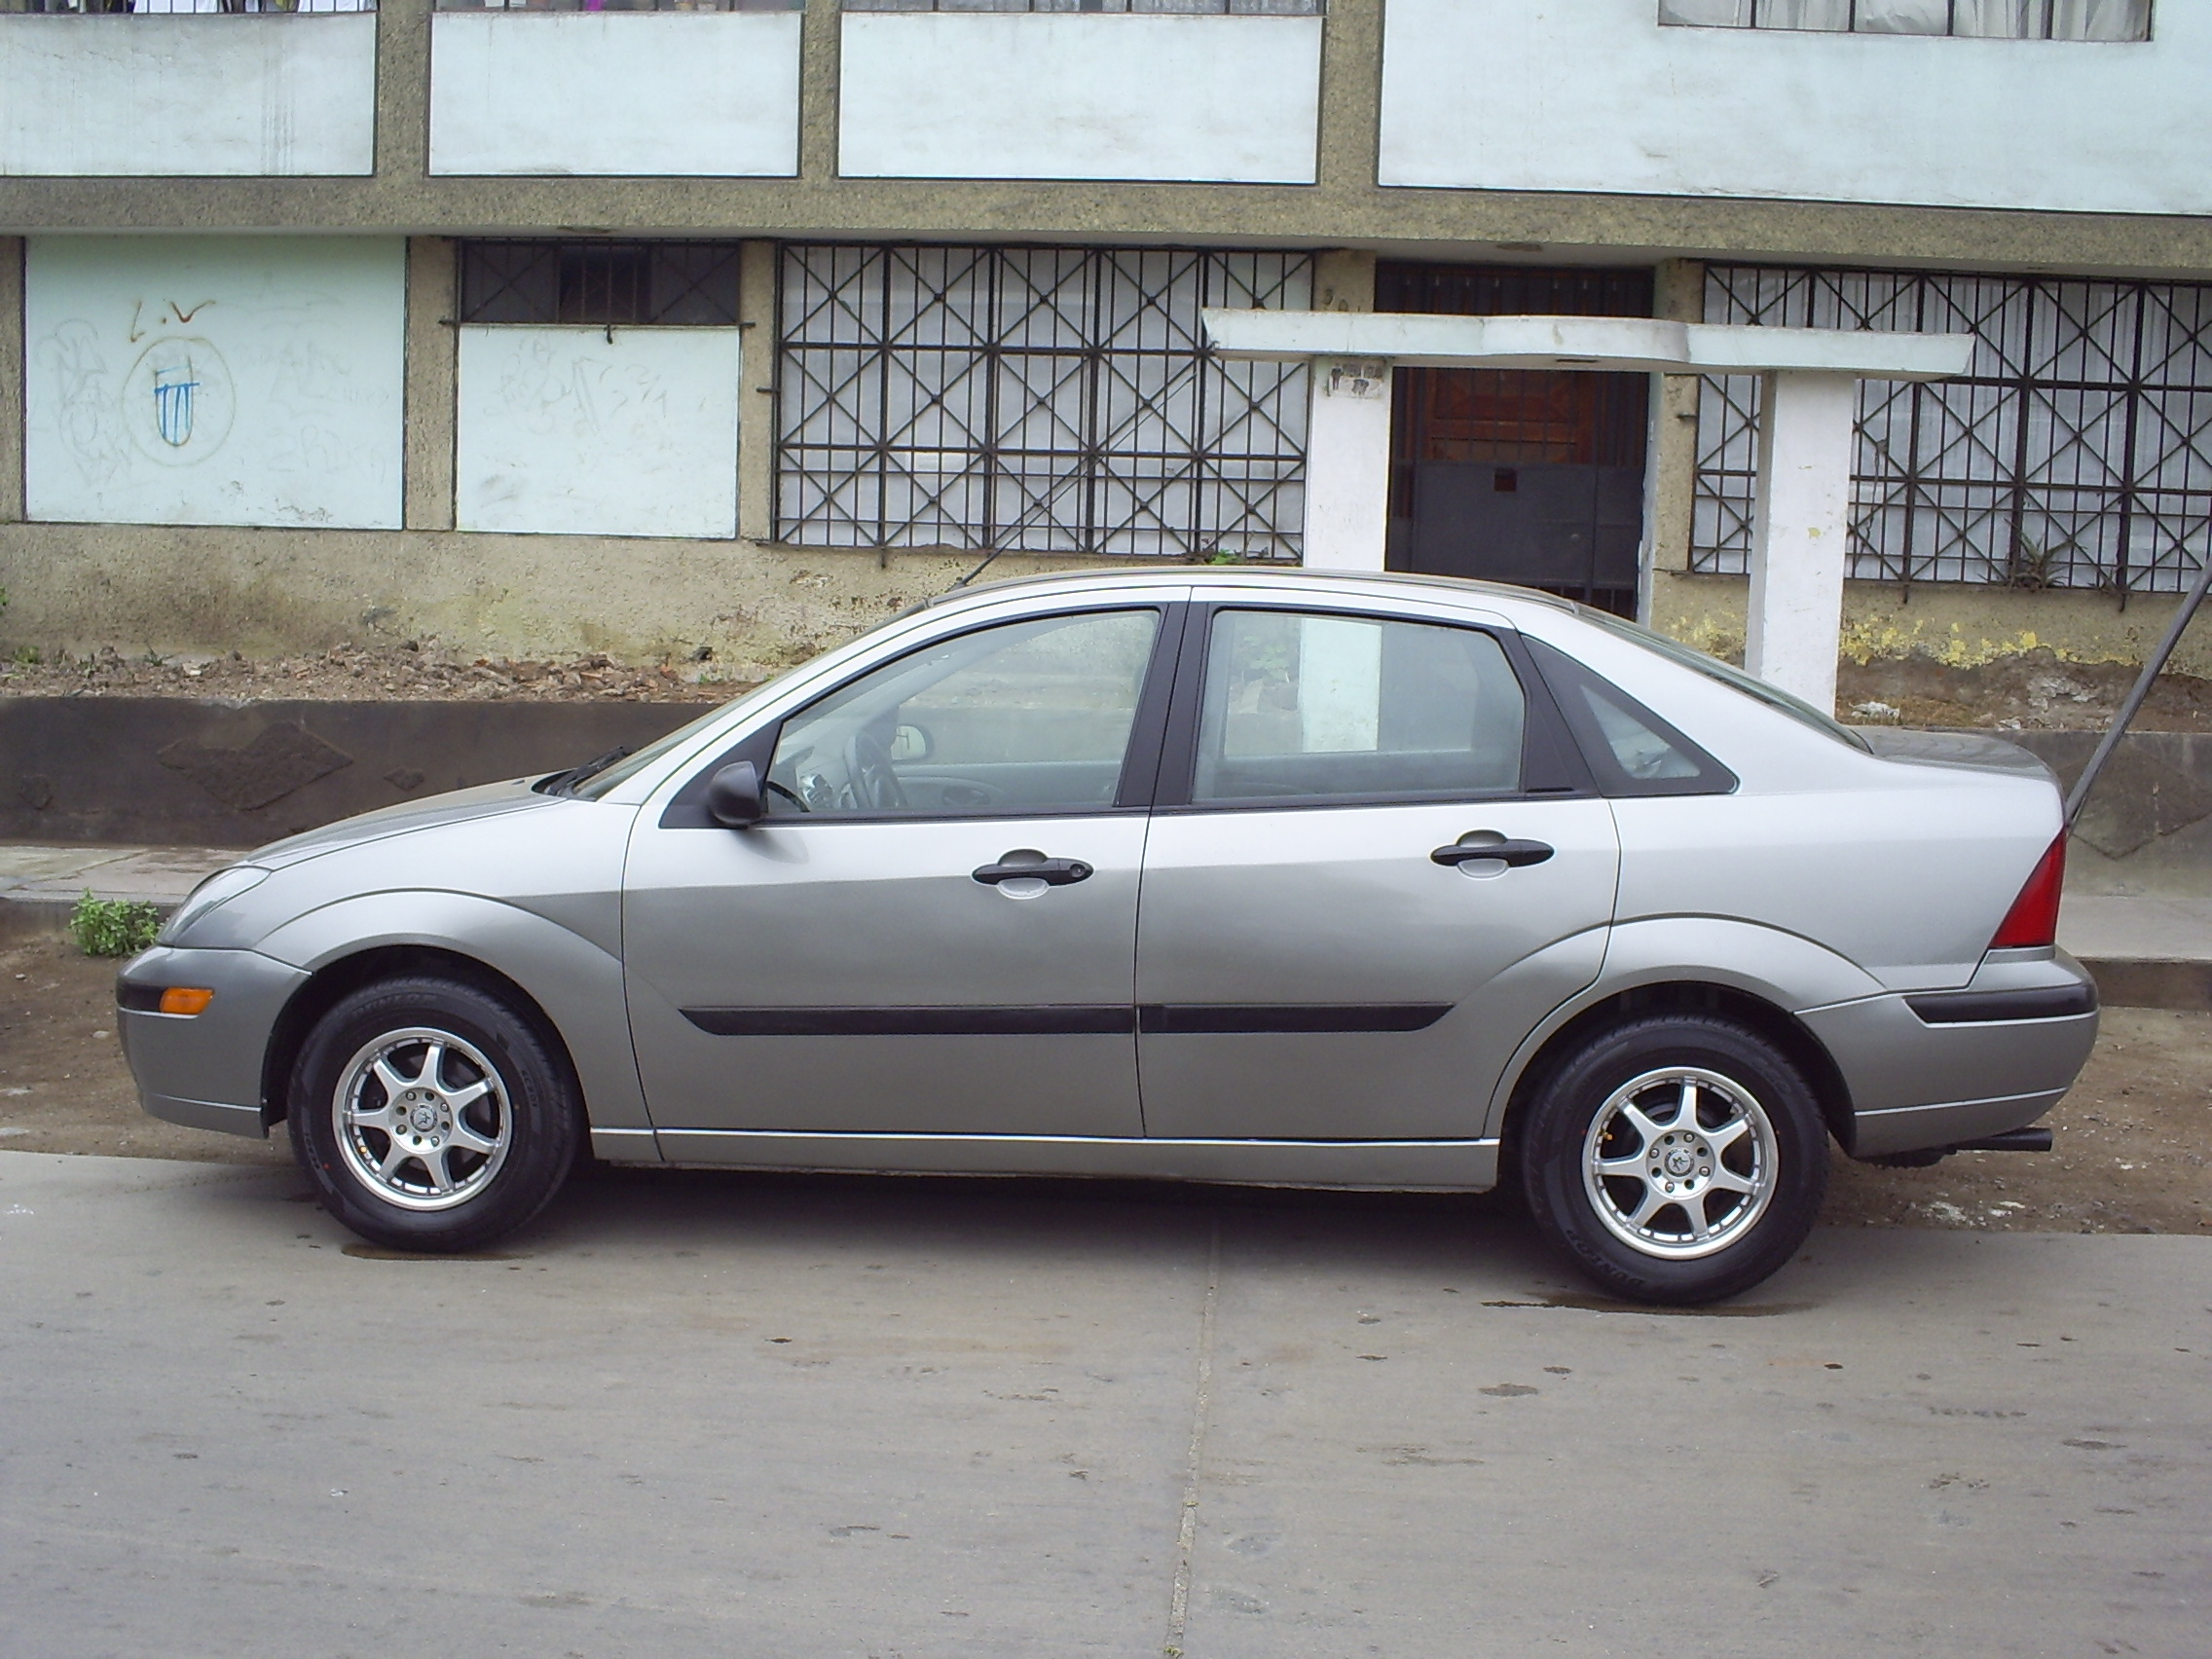 Download ford focus 2004 6 jpg